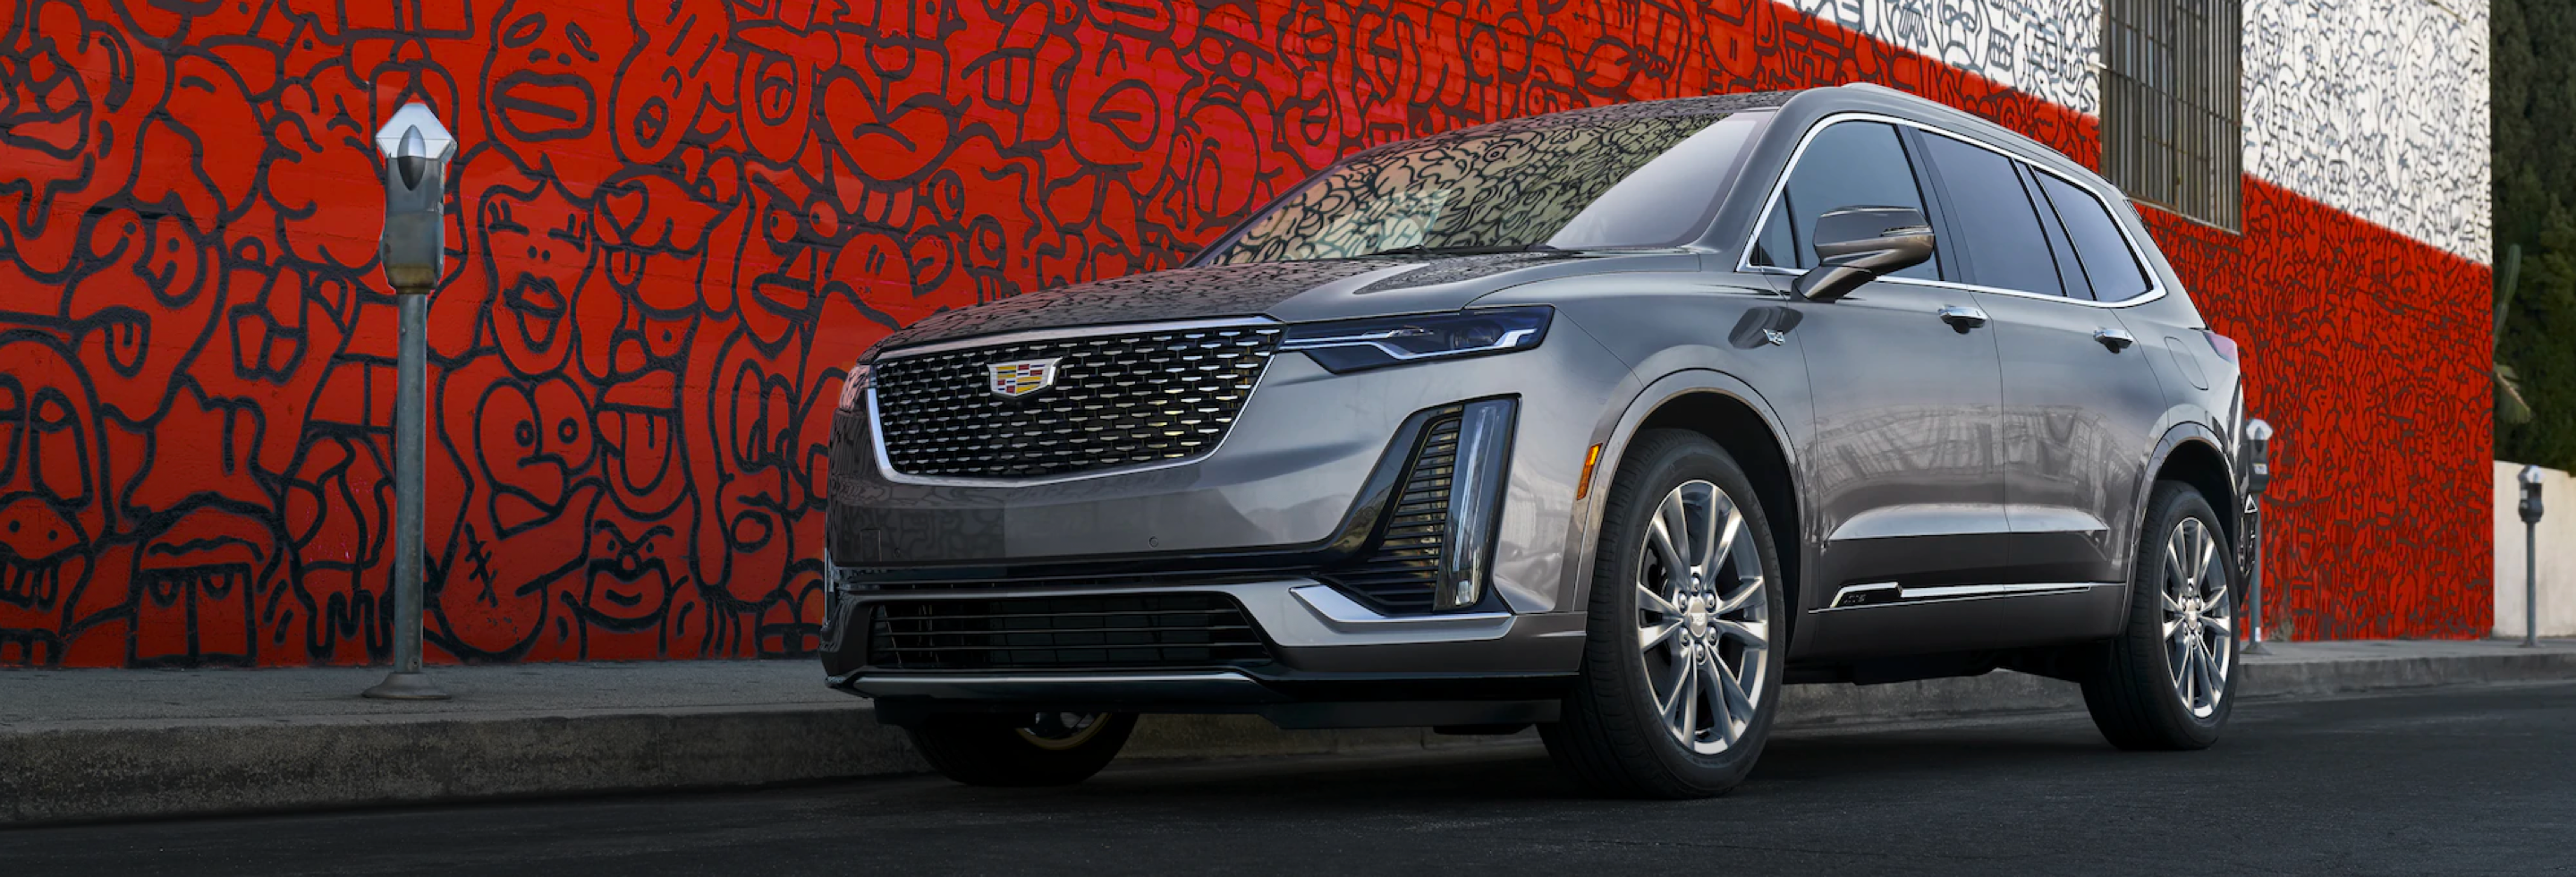 2021 Silver Cadillac XT6 Angled View Parked on a Street